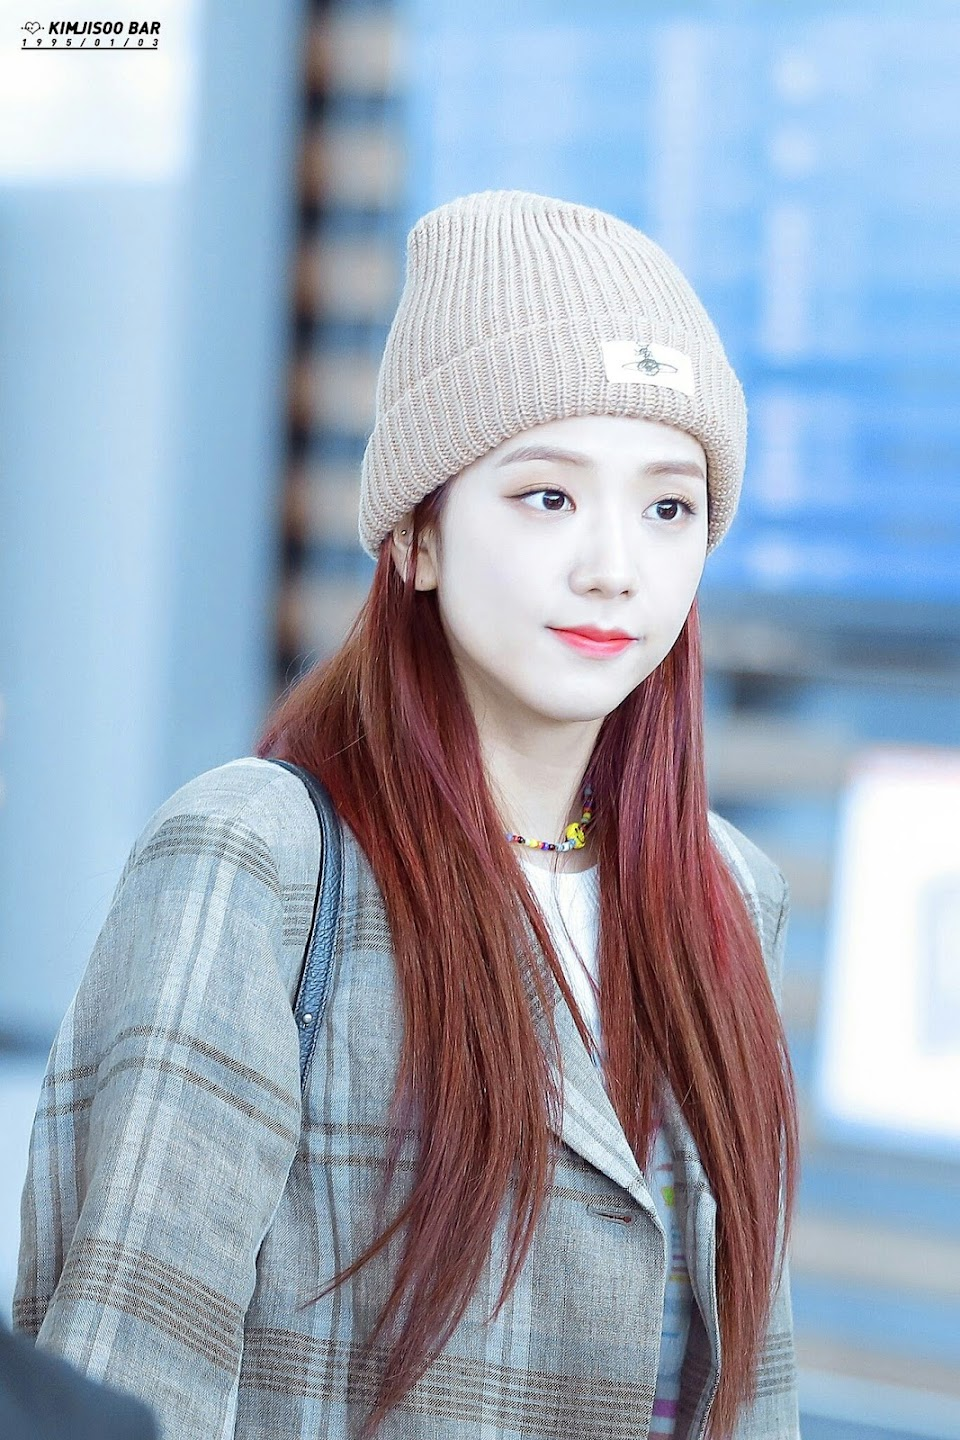 jisoo plaid 10